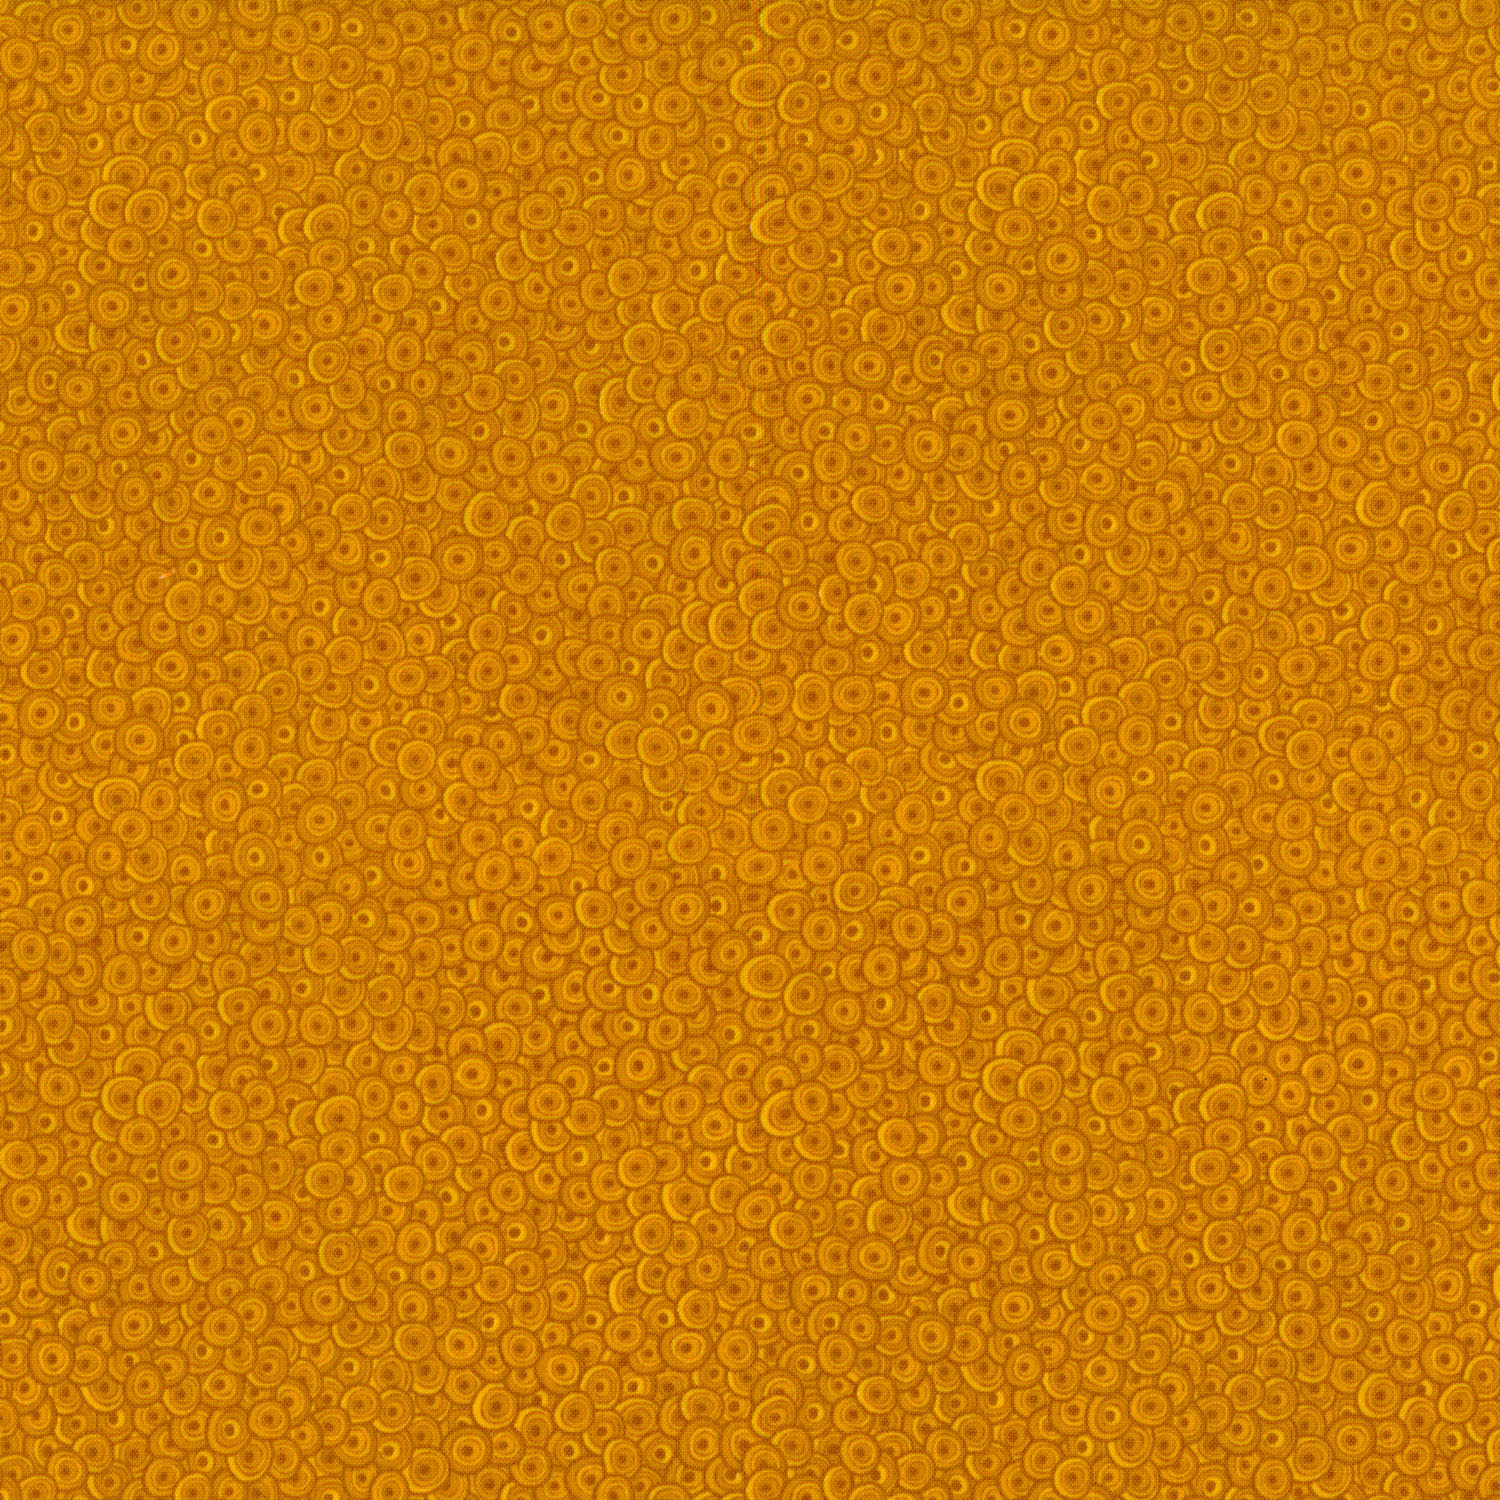 2627-011 Basically Patrick - Millefiori - Amber Fabric